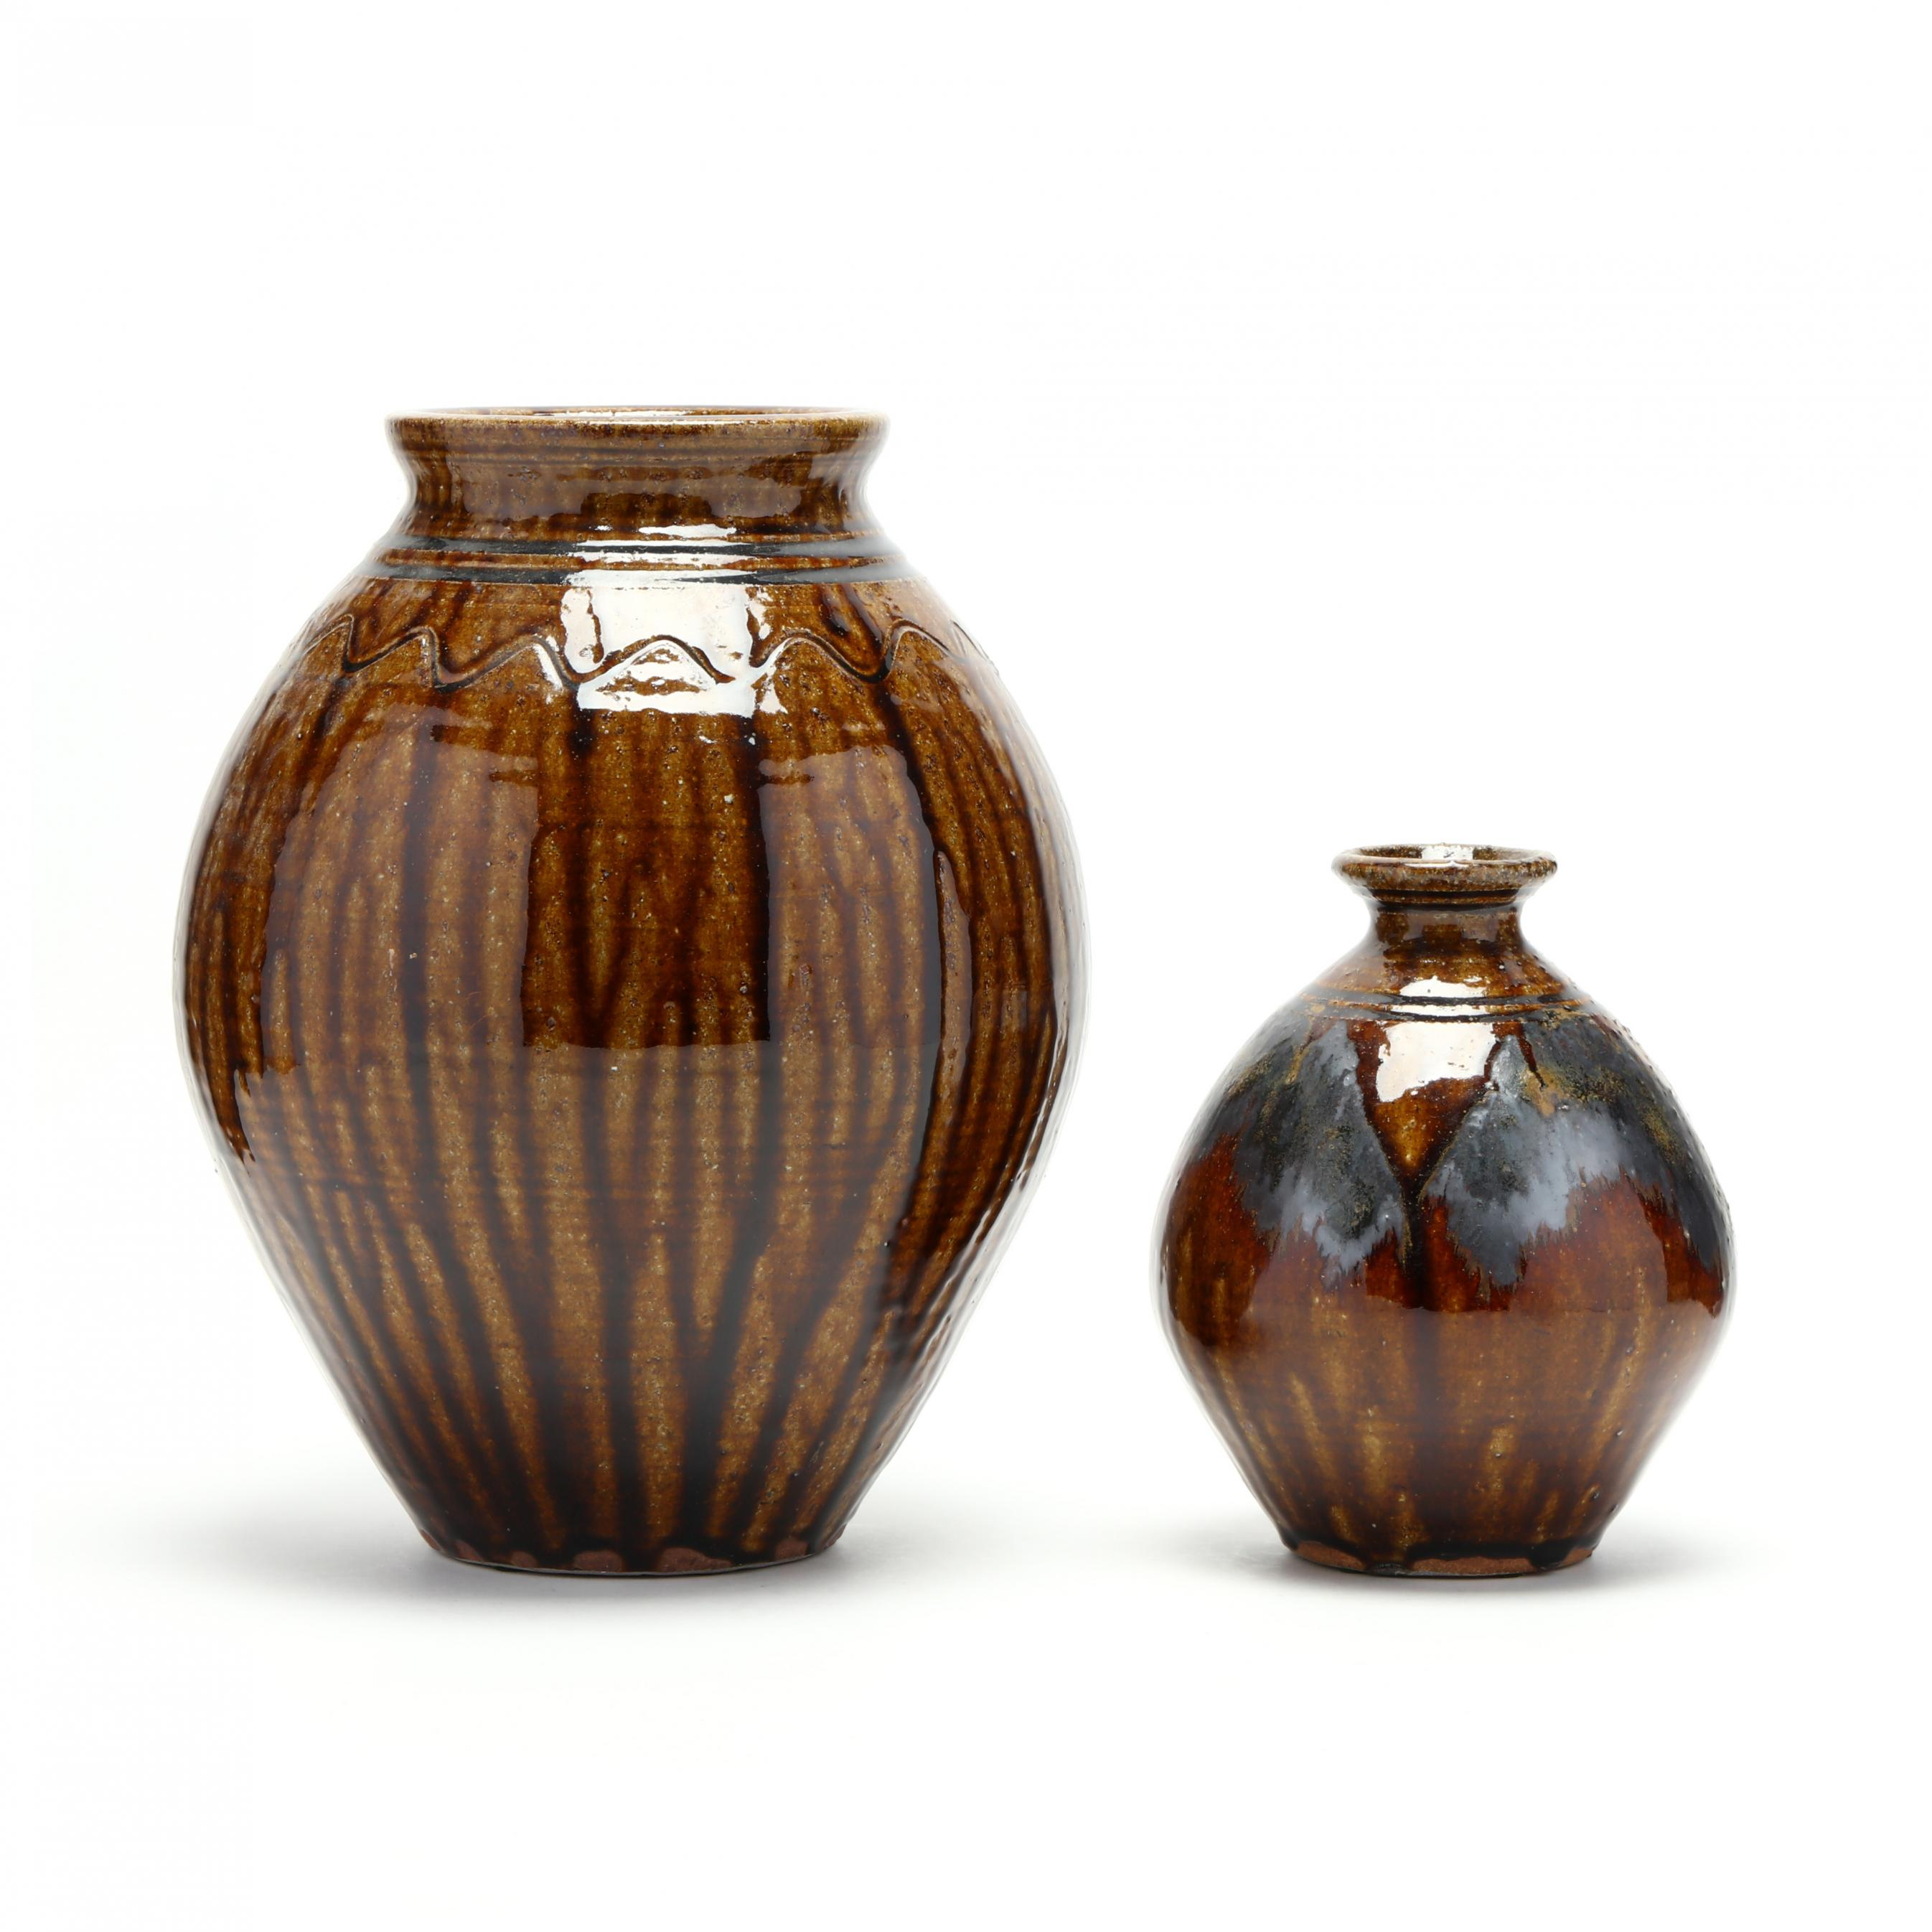 western-nc-kim-ellington-two-alkaline-glazed-vases